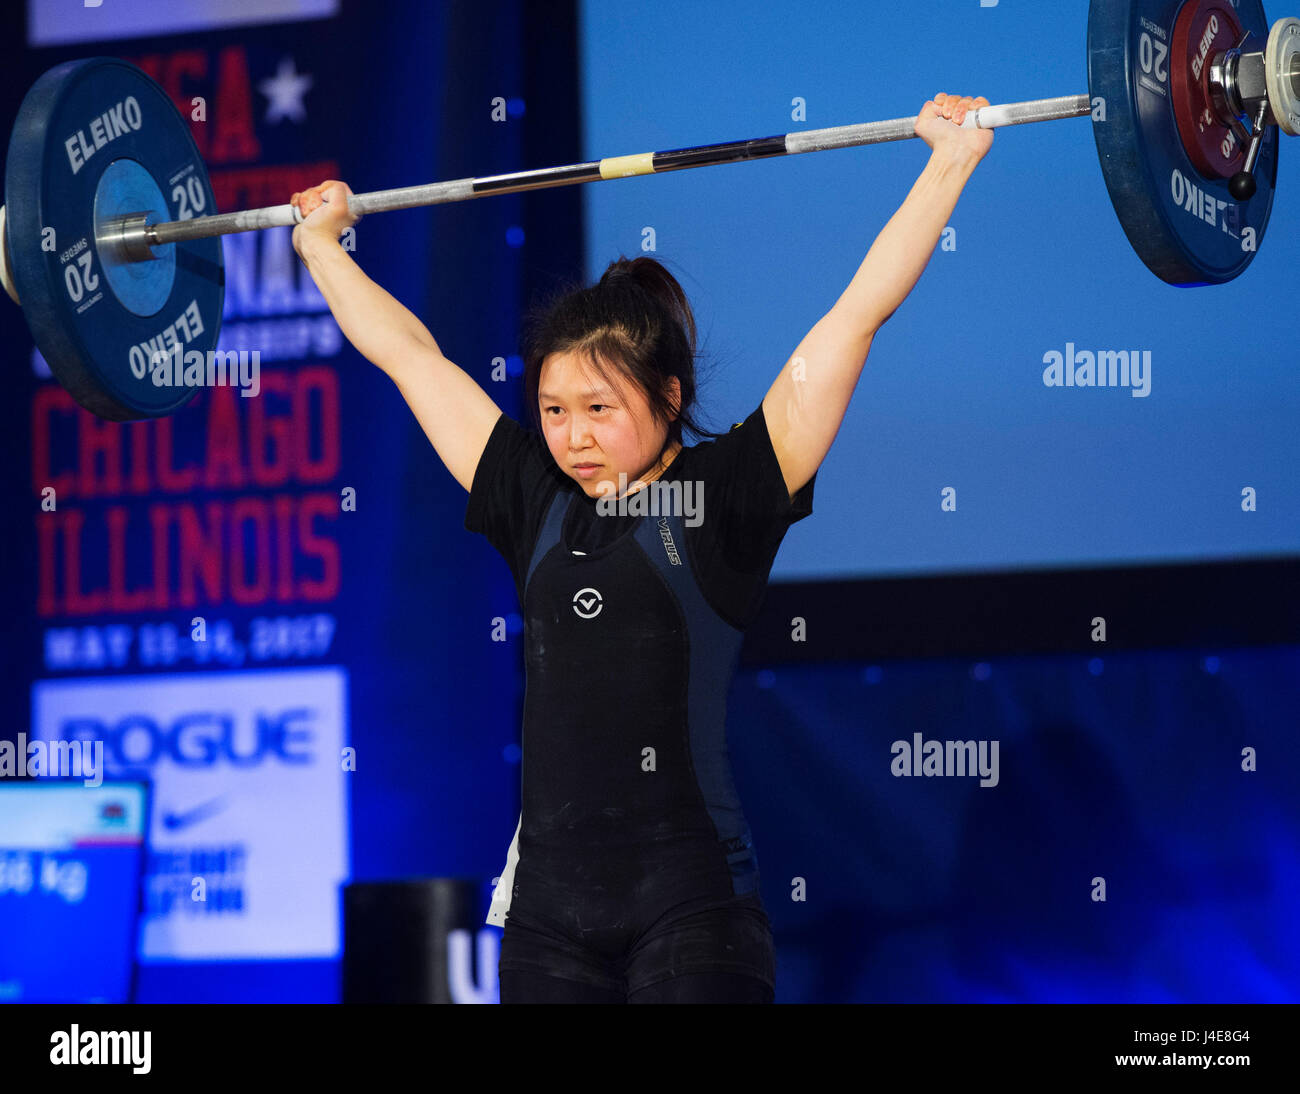 May 12, 2017: Jennifer Won competes in the Womens 48kg. class at the USA Weightlifting National Championships in - Stock Image